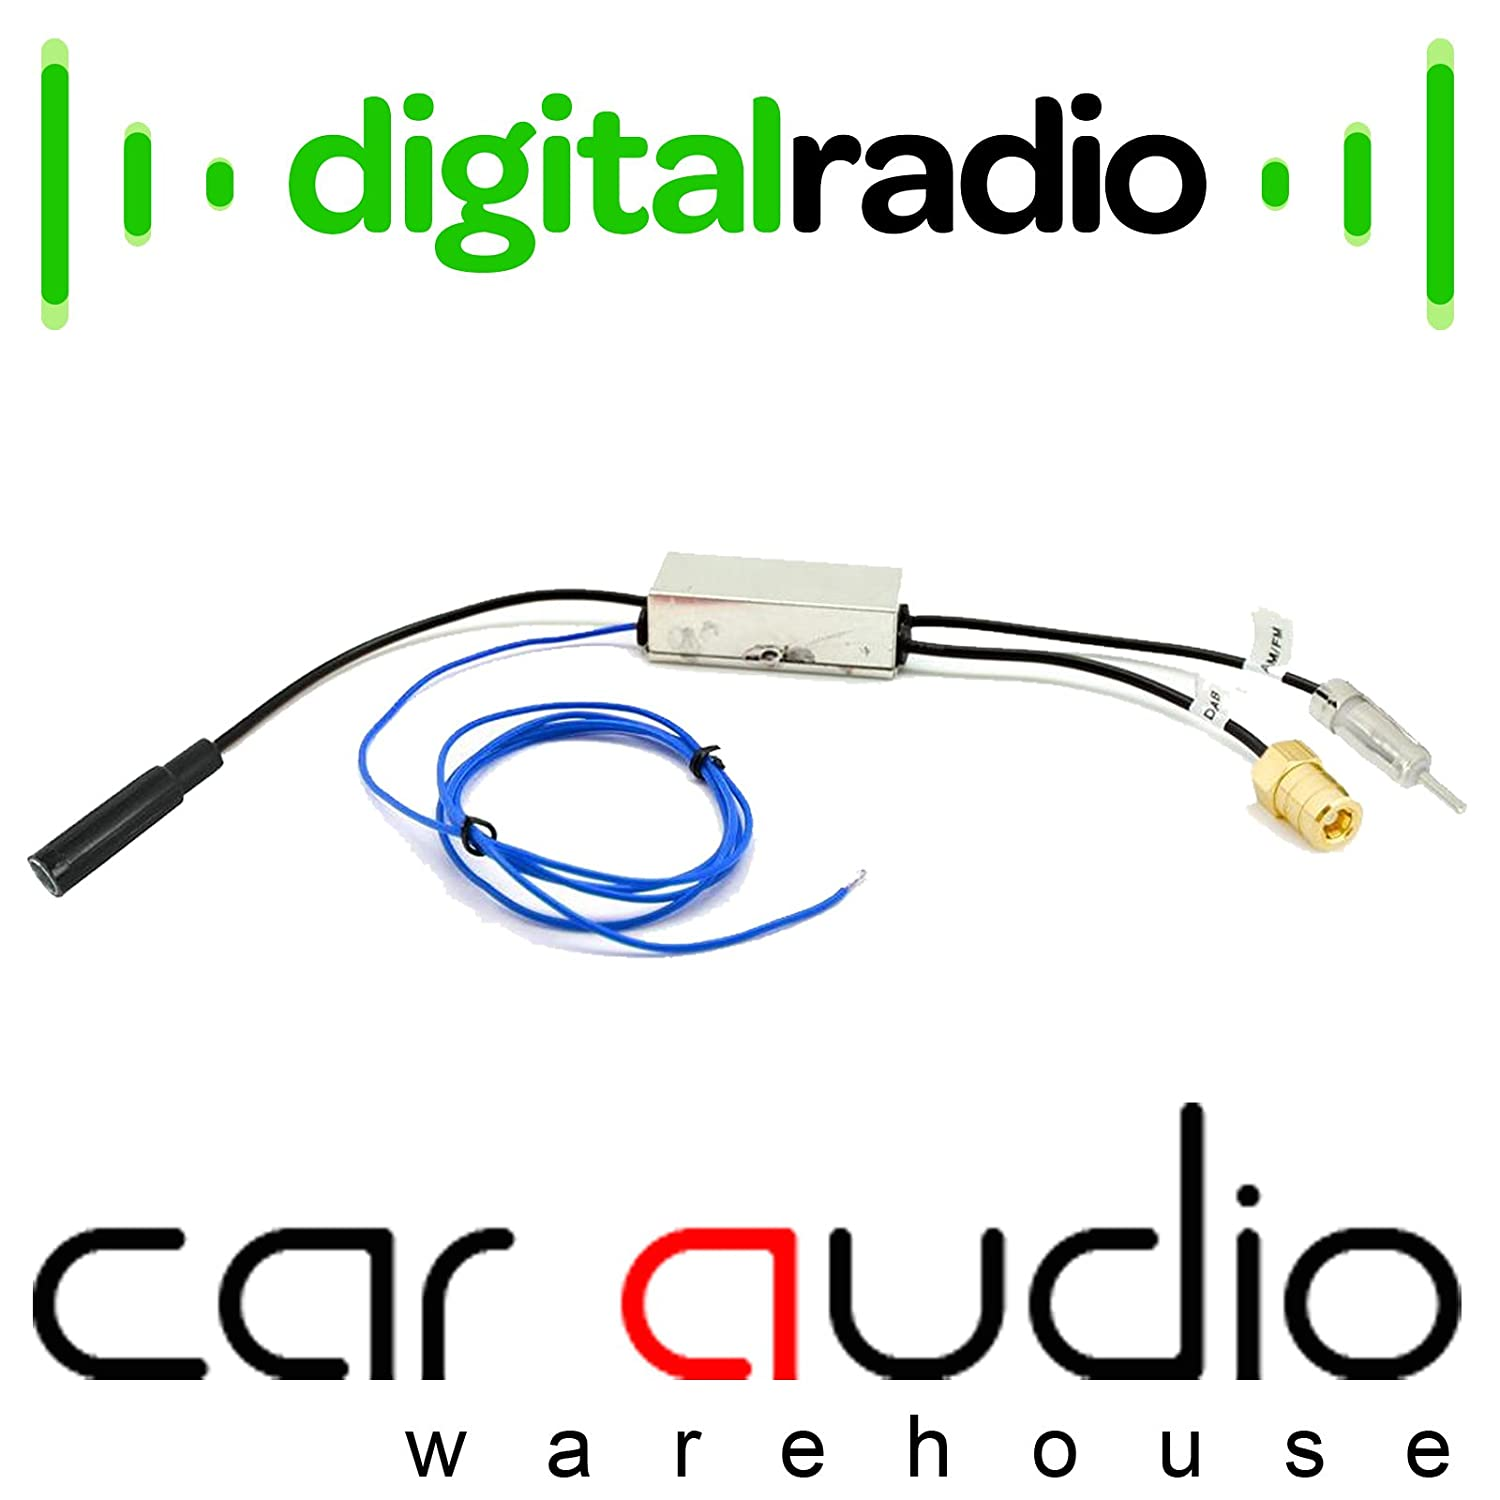 Autoleads Pc6 536 Dab Radio Car Stereos Aerial Antenna Amplifier Wiring Kit Halfords Electronics